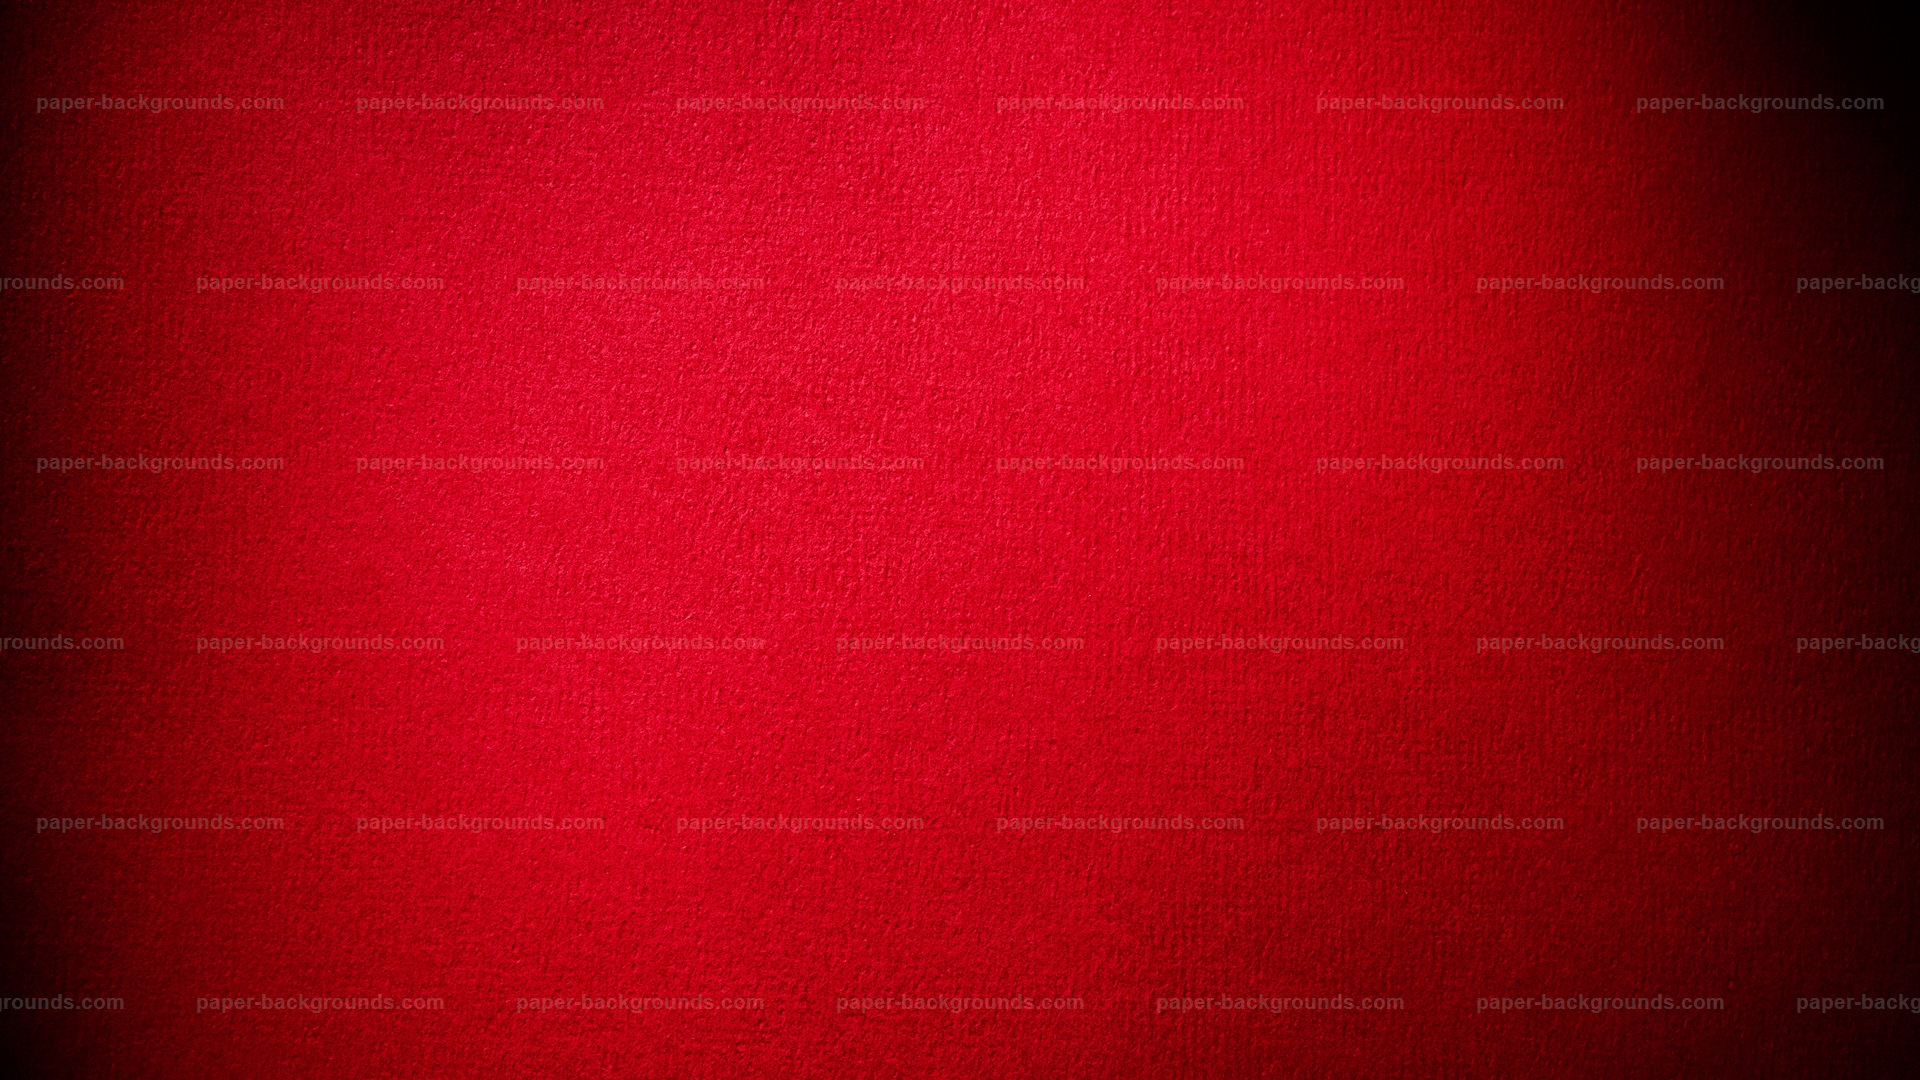 Paper Backgrounds | Paper Backgrounds | Royalty Free HD Paper Backgrounds